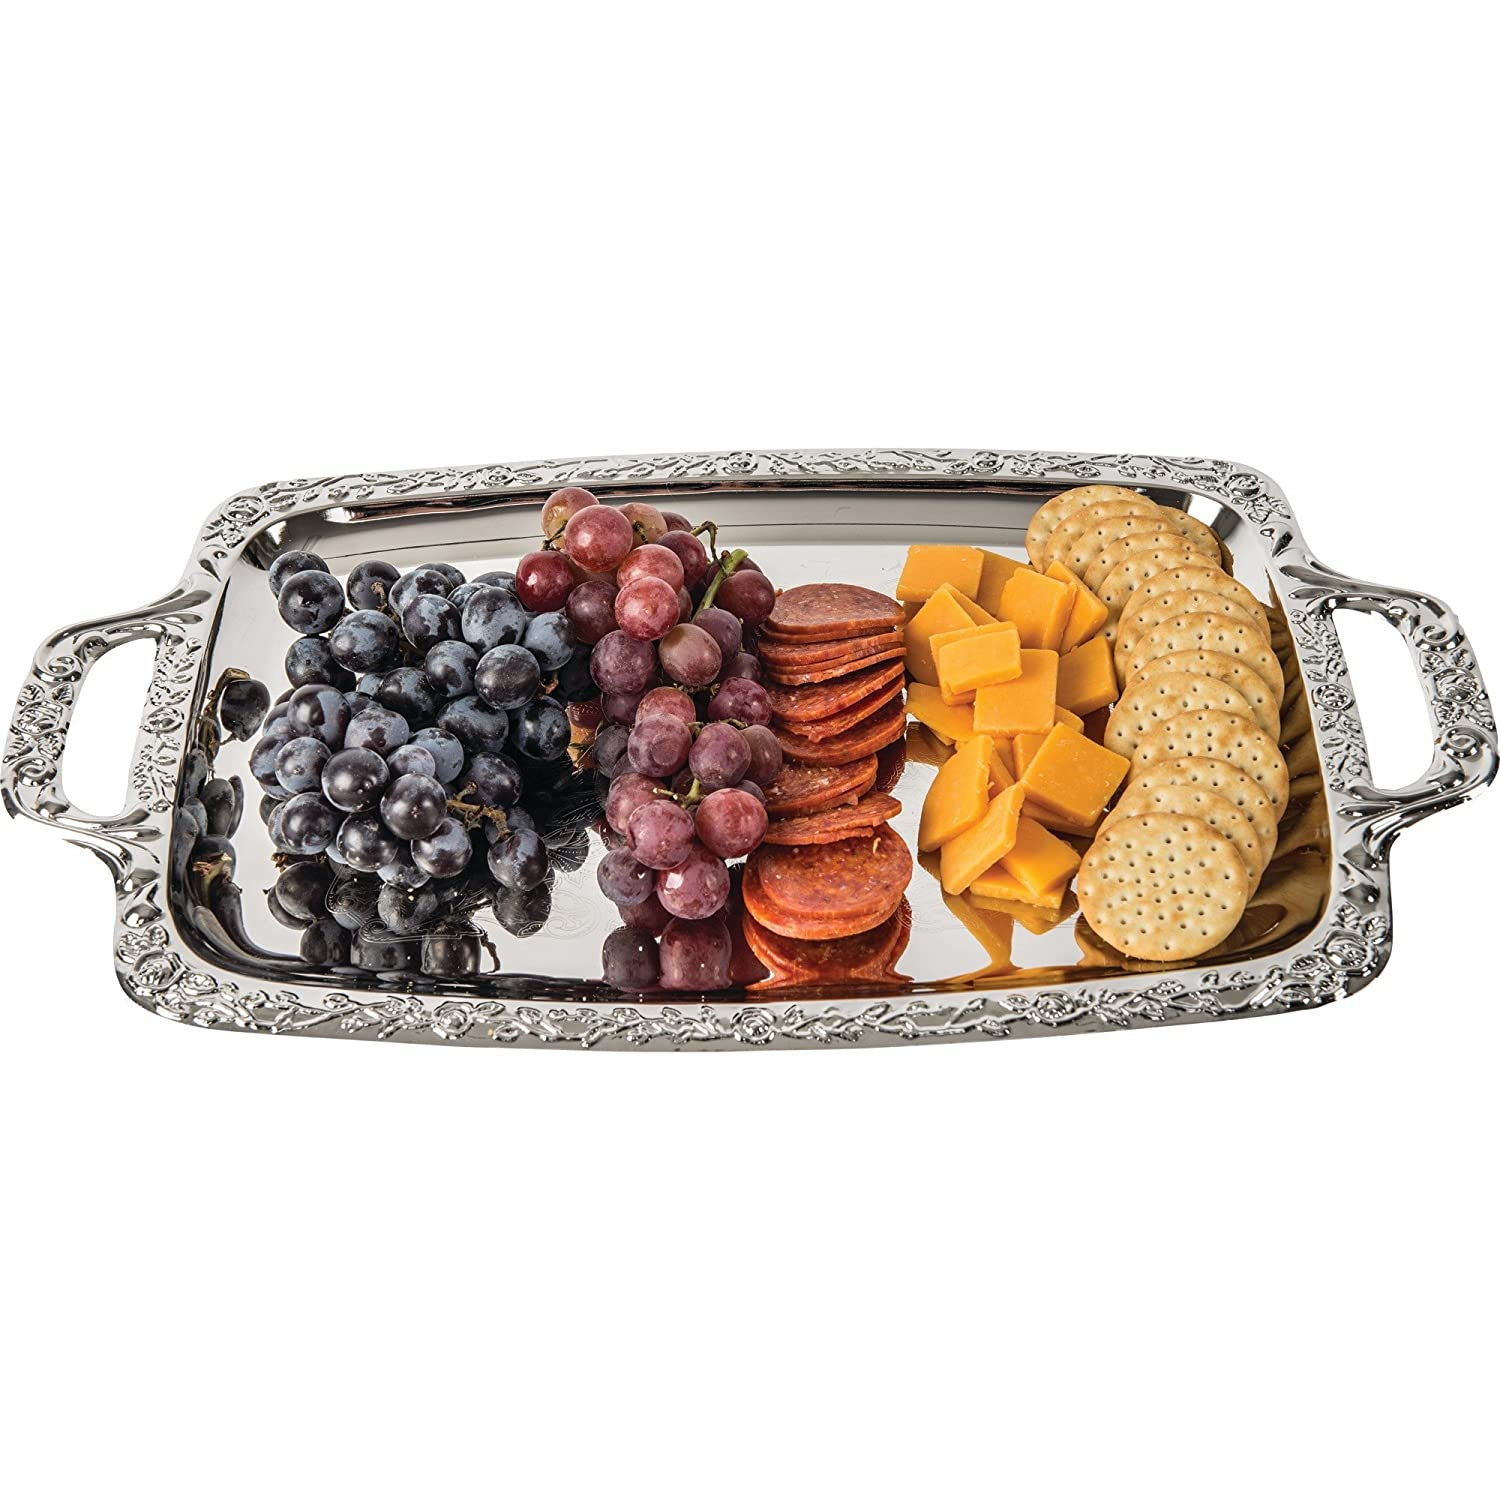 Serving Tray | Discount Kitchenware Items | Under $50 Gift Ideas For People Who Love To Cook